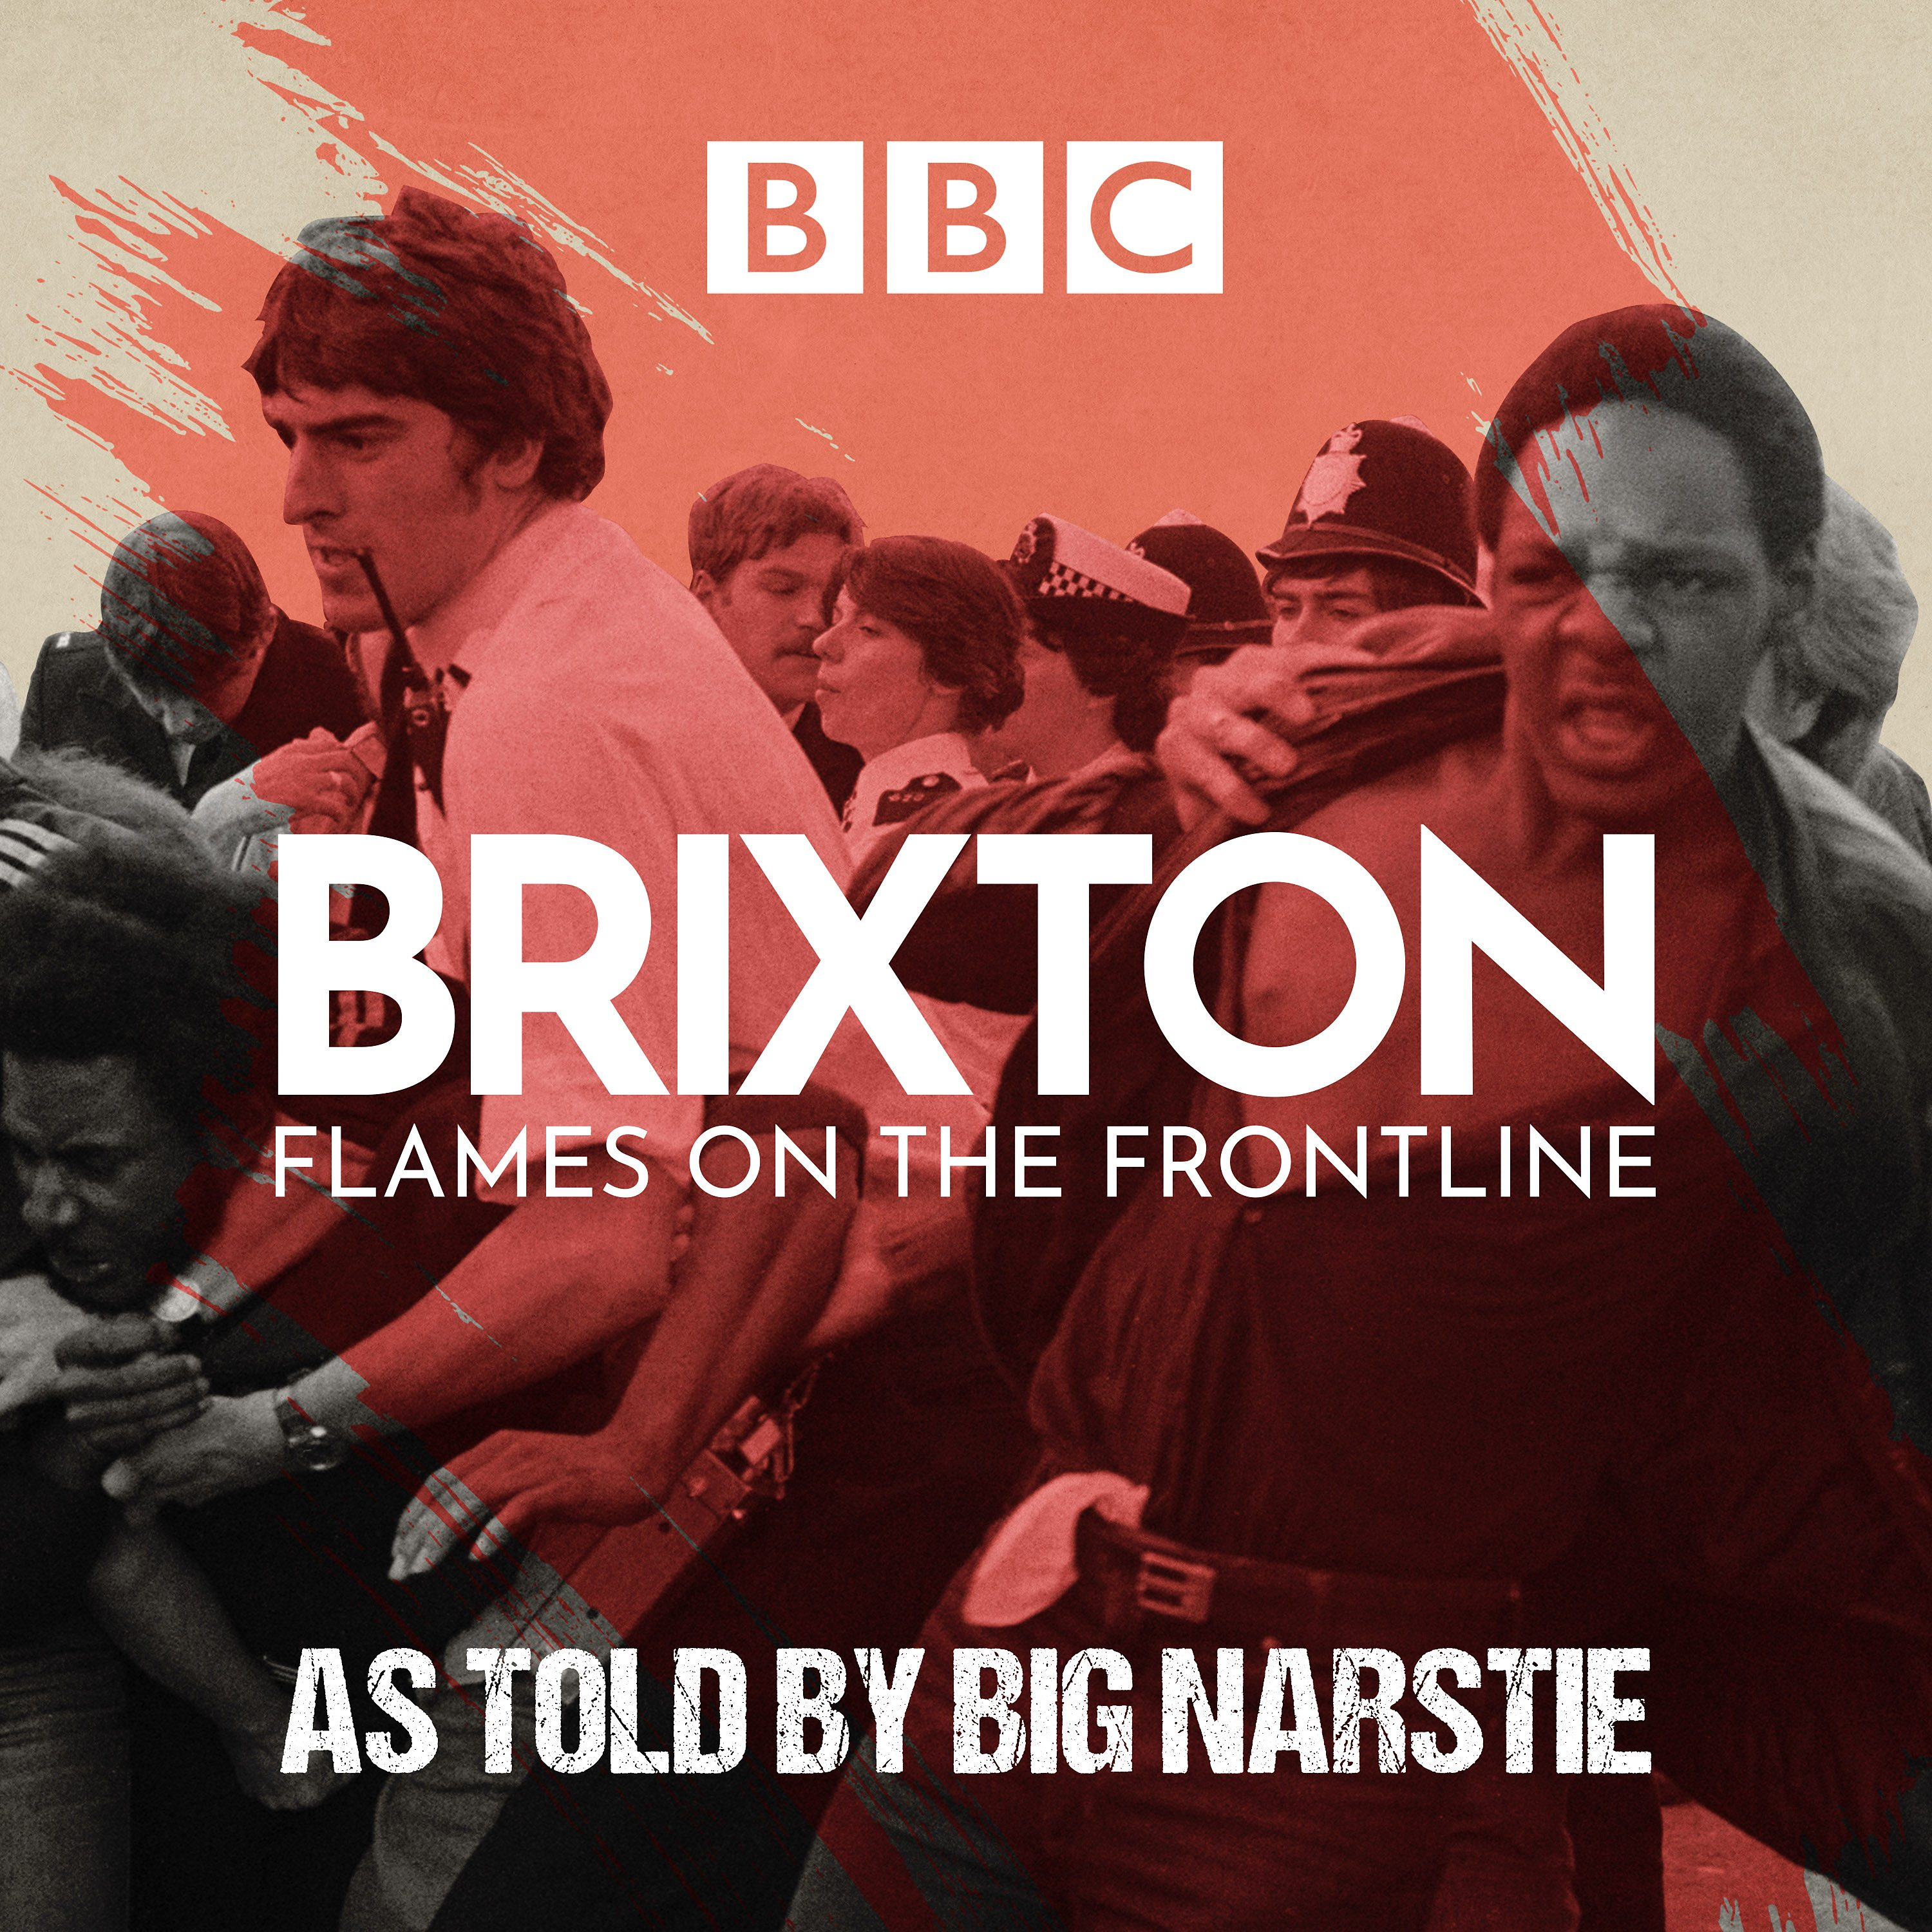 Brixton: Flames on the Frontline